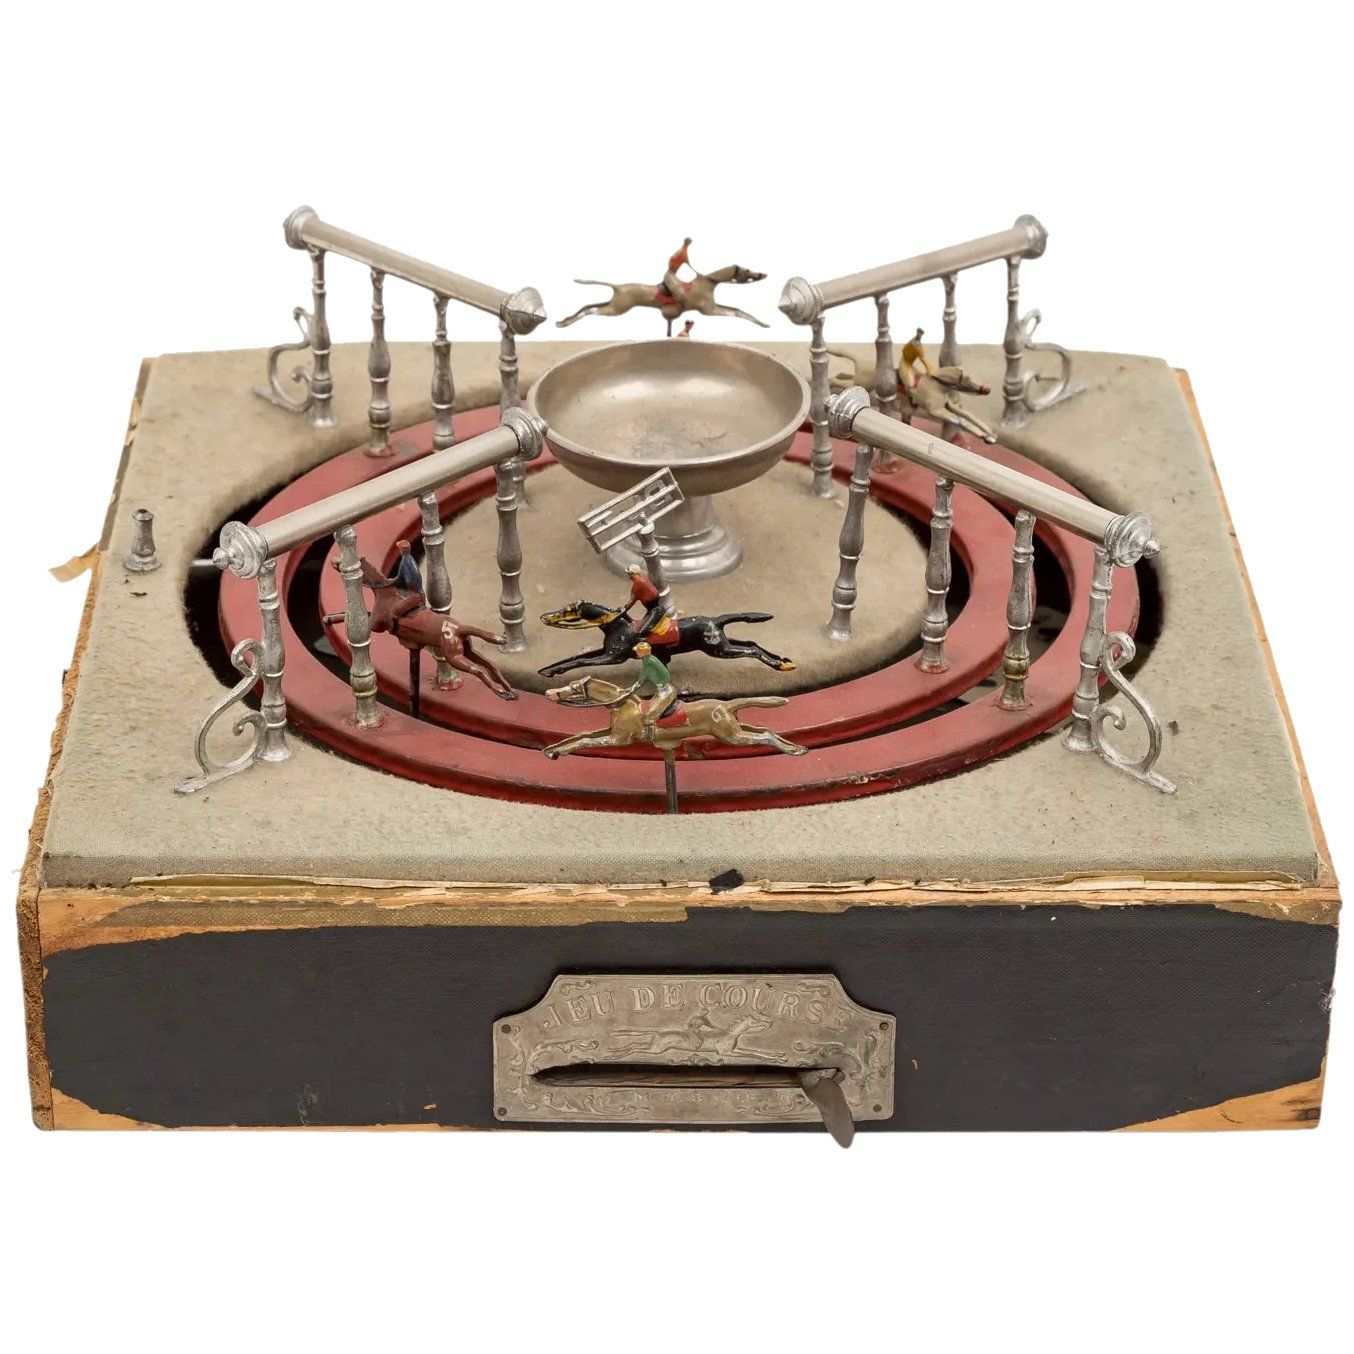 Unusual 1910 French 'jeu De Course' Mechanical Horse Racing encequiconcerne Jeux De Course Online